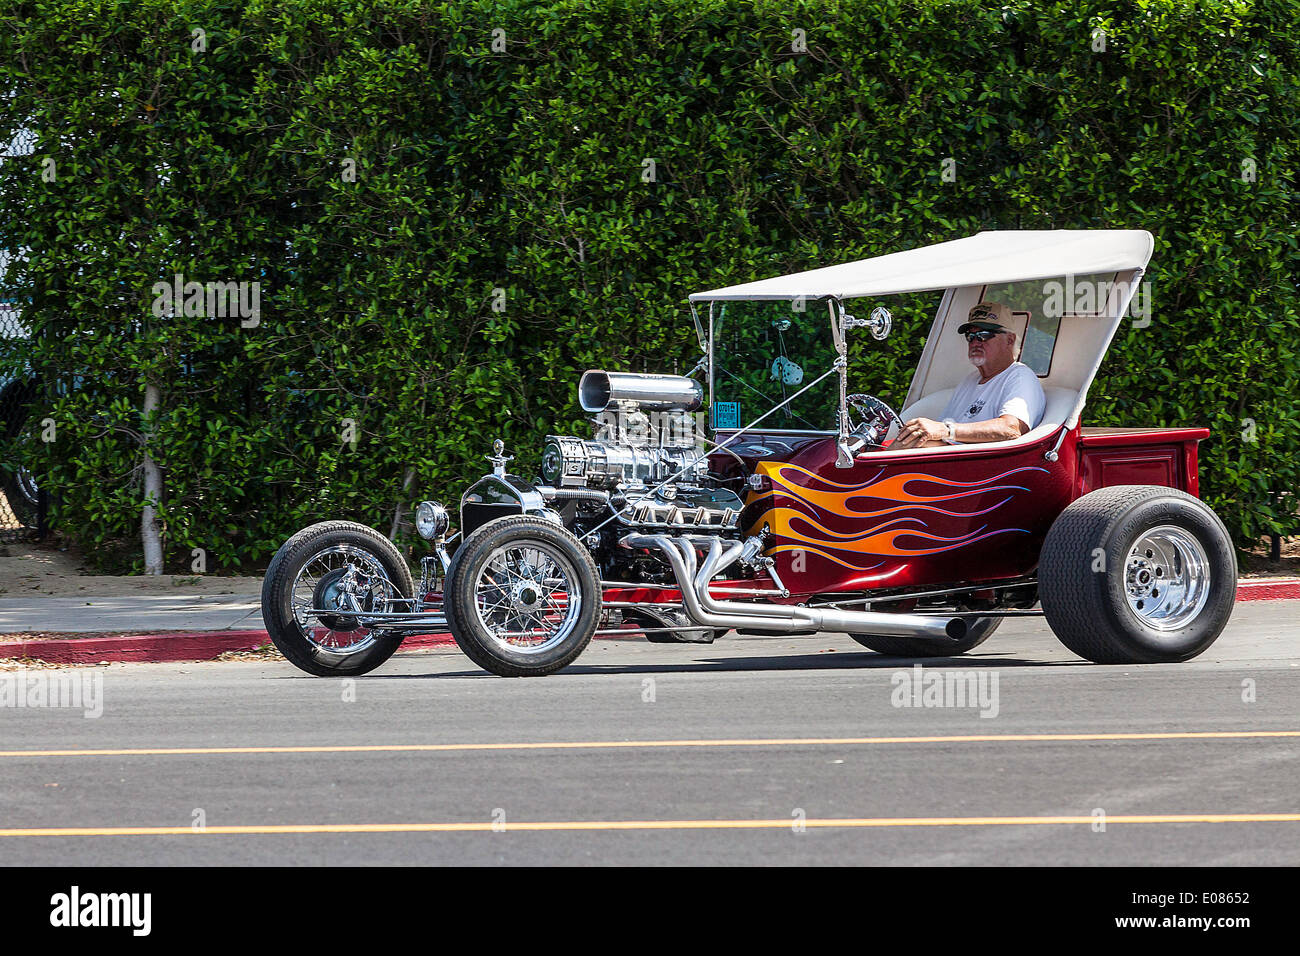 a ford t bucket hot rod stock photo: 69021934 - alamy